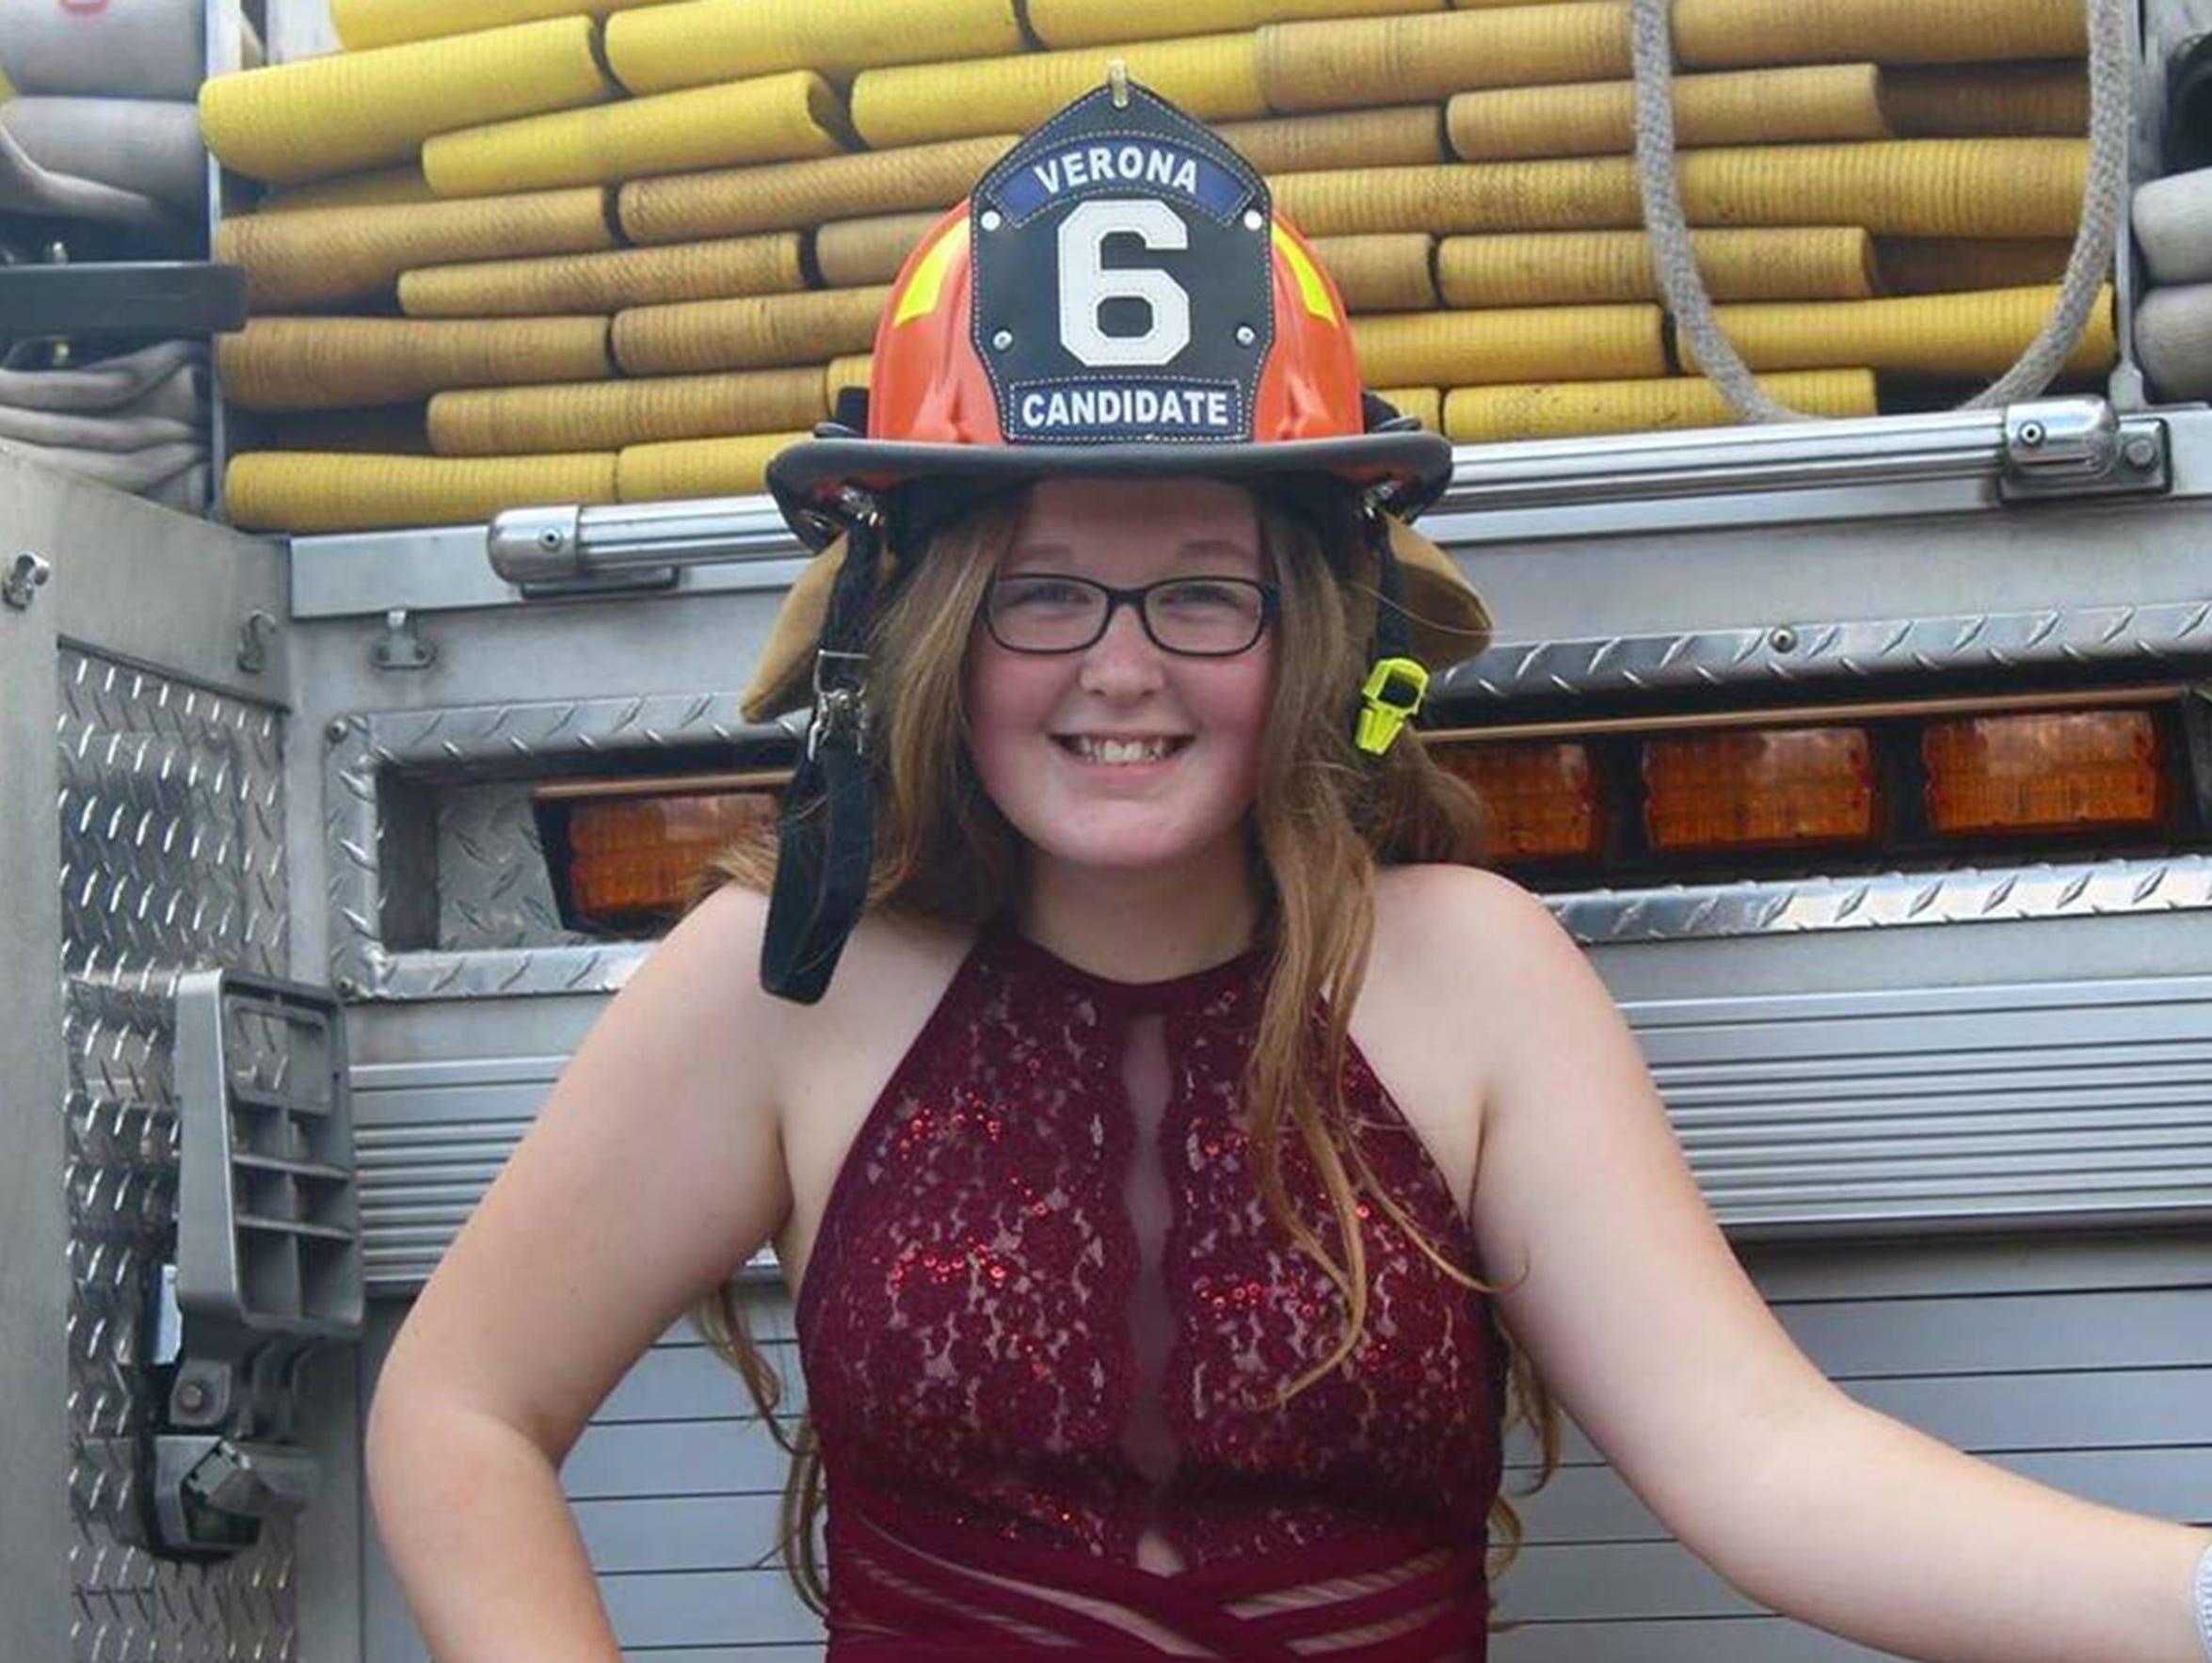 Arianna Hoover, 16, chose to have her prom photos taken down at Verona Volunteer Fire Company's firehouse where she works as a junior volunteer firefighter.